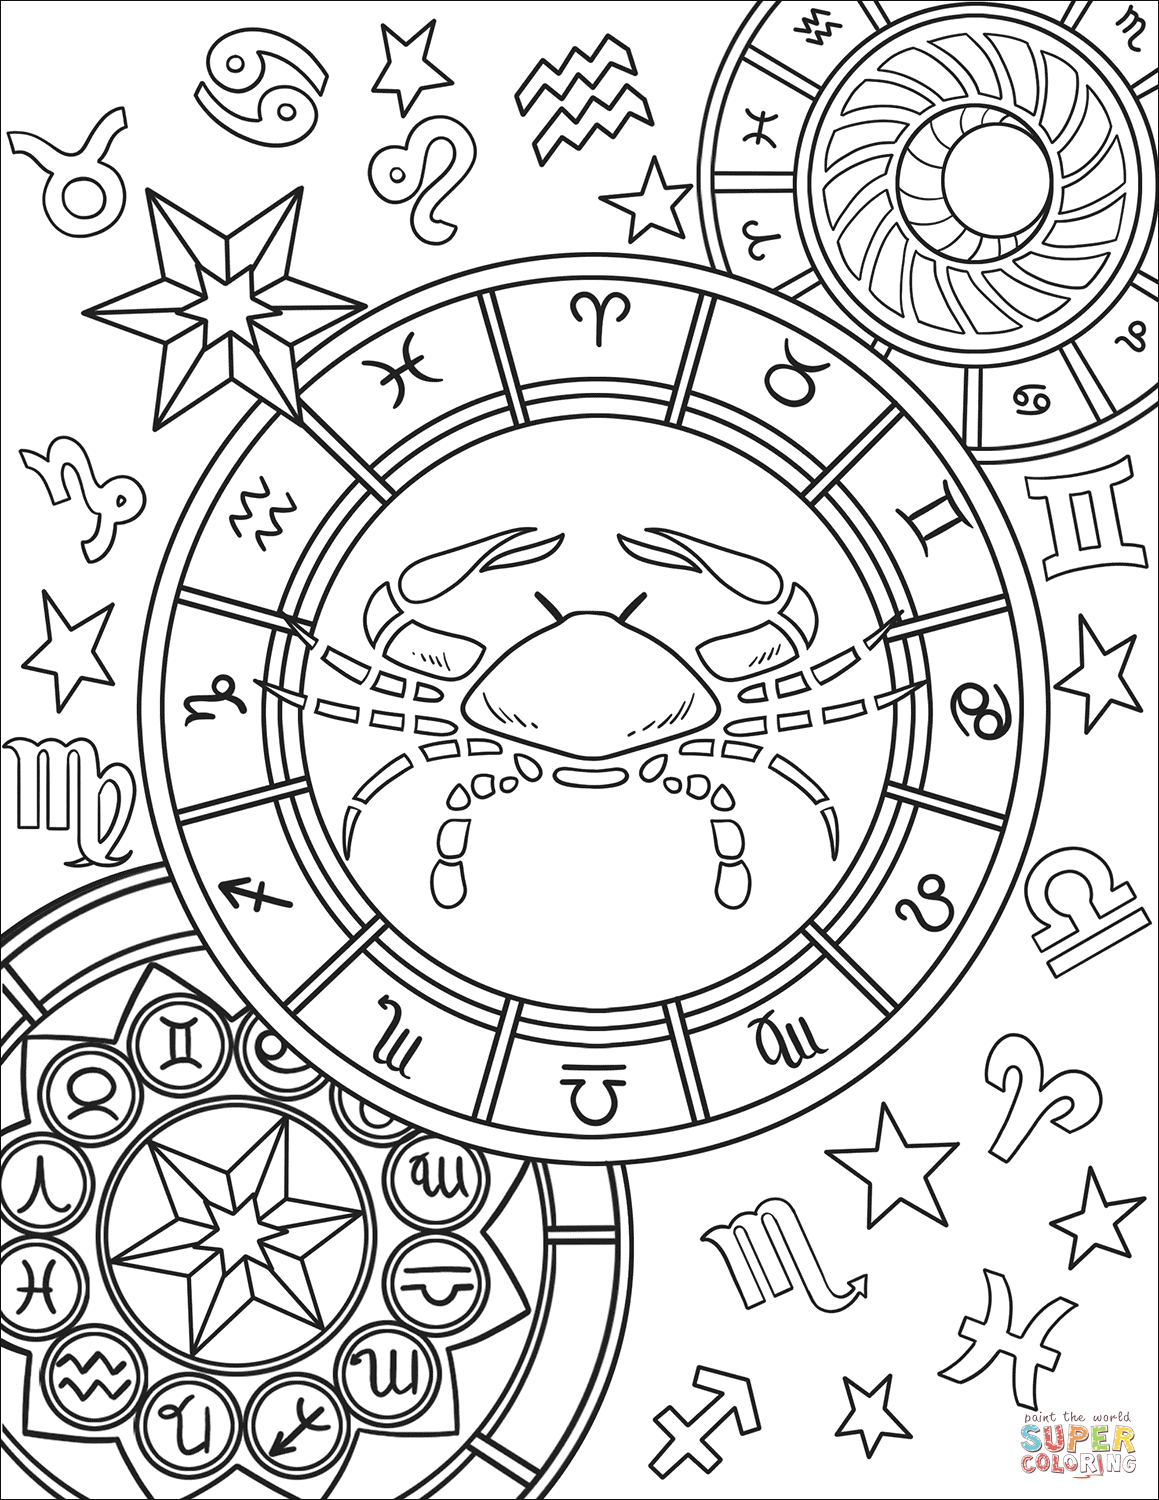 Sagittarius Zodiac Sign Coloring Page Free Printable Coloring Pages Star Coloring Pages Space Coloring Pages Mandala Coloring Pages